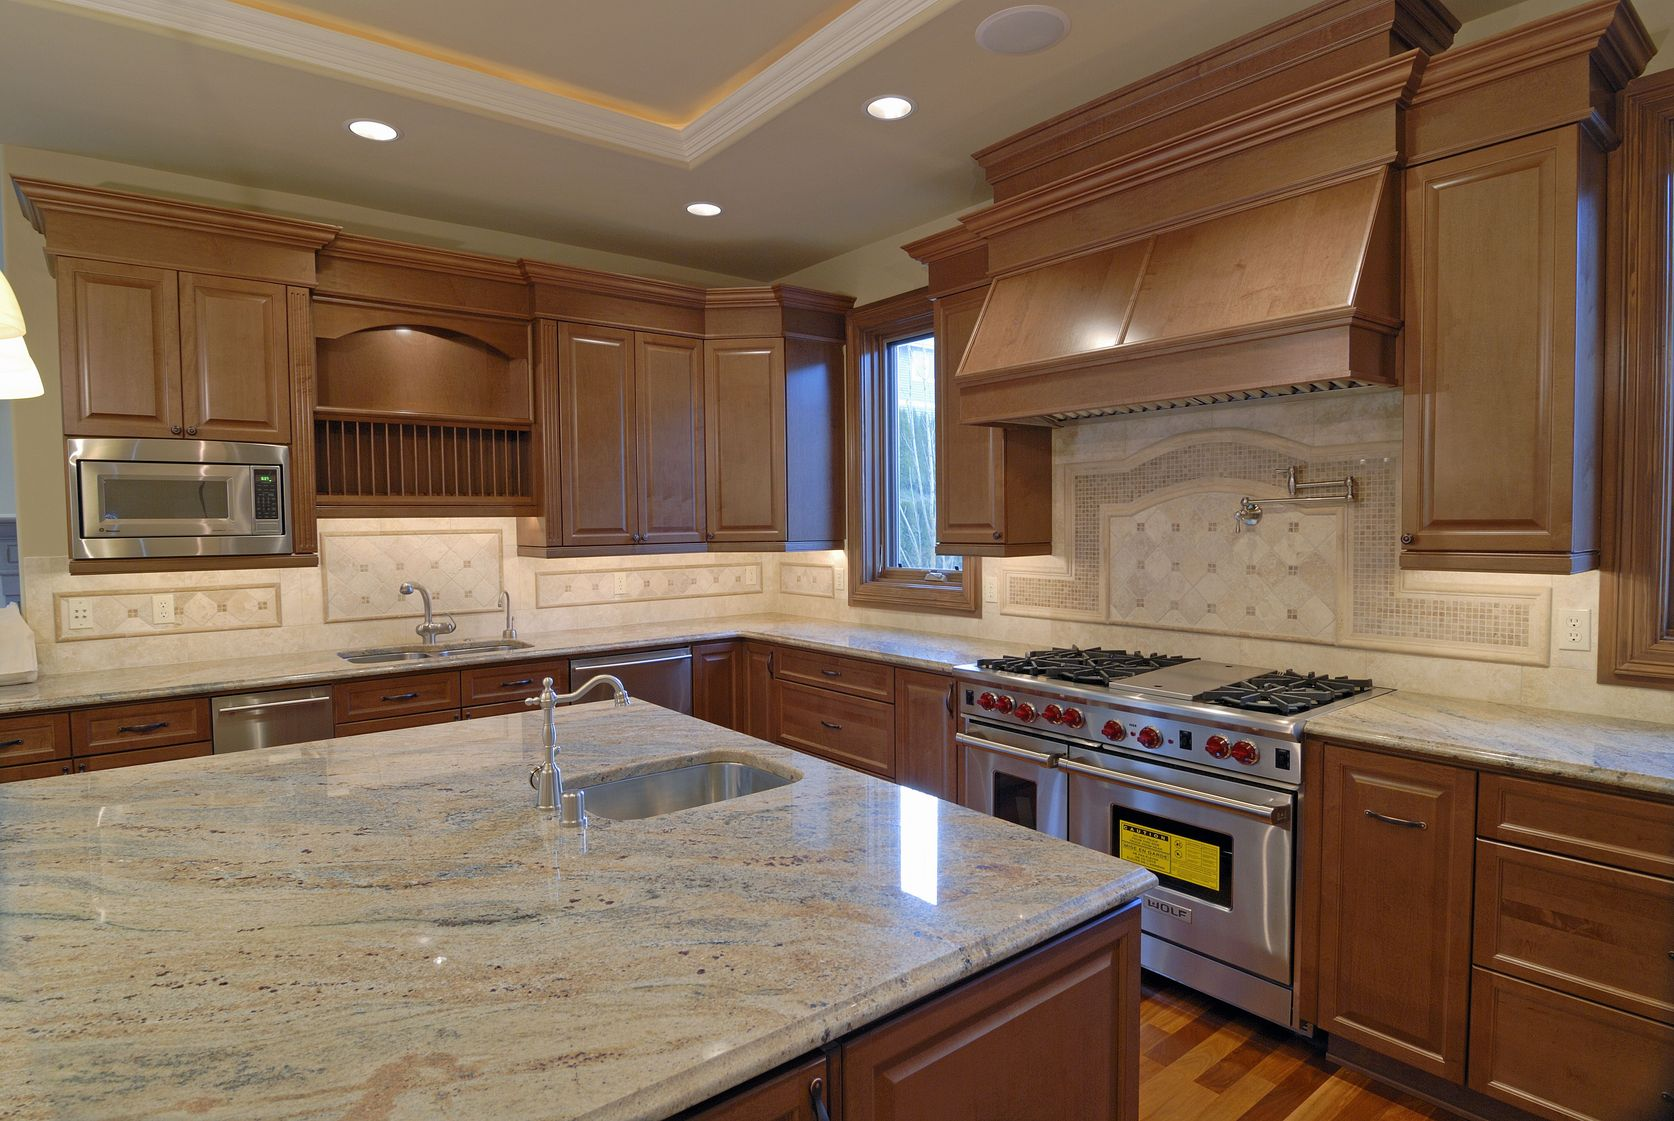 Kitchen remodeling tips how to design a kitchen with for Kitchen countertops